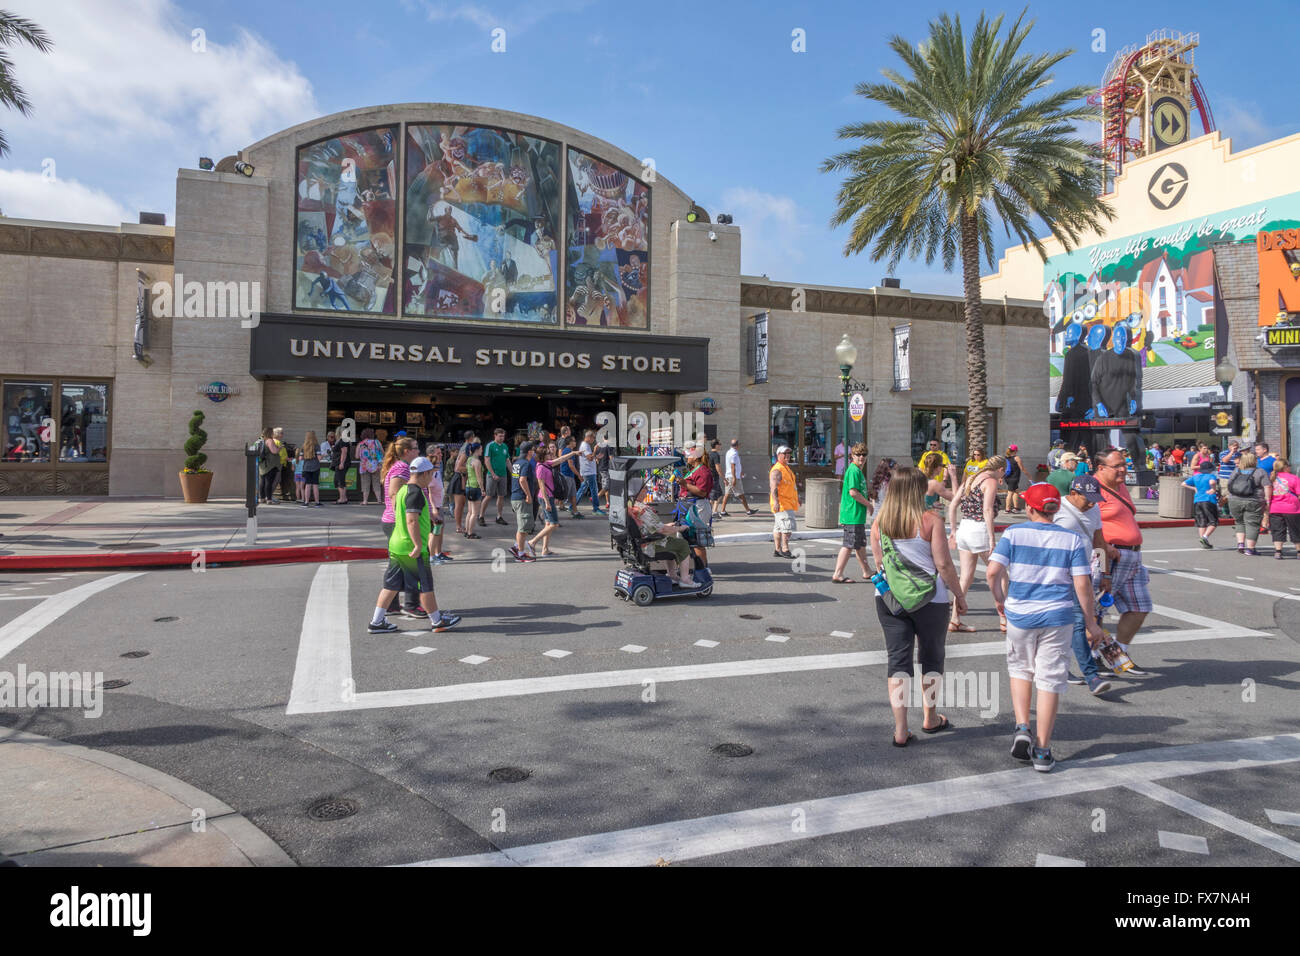 Universal Orlando Discount Tickets | Up to $40 off | Visit Orlando,+ followers on Twitter.